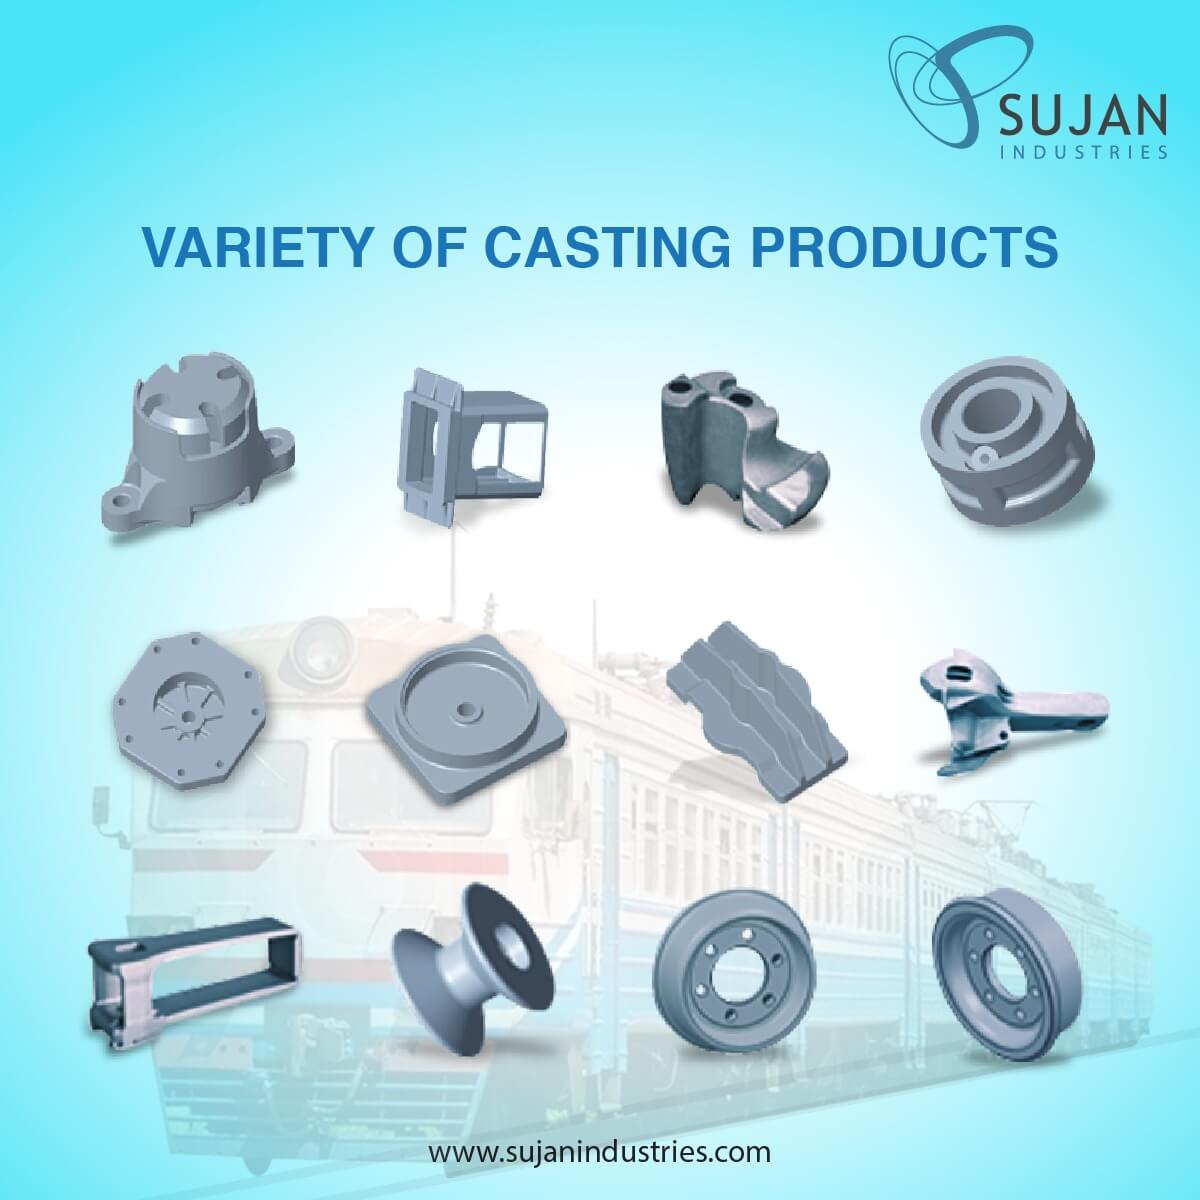 Stainless steel casting foundry Sujan